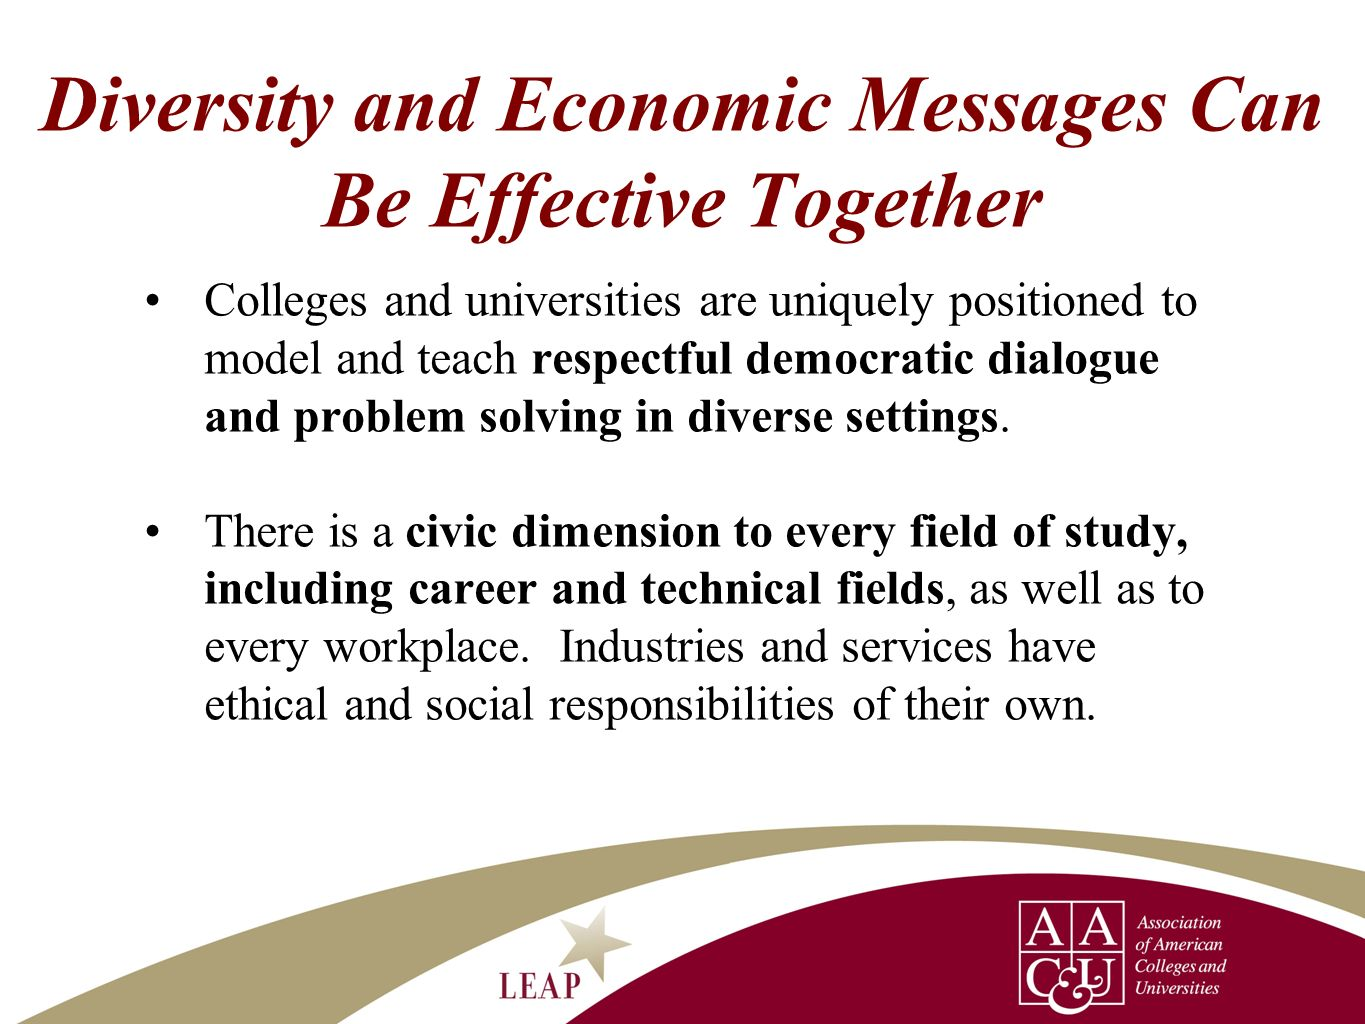 Diversity and Economic Messages Can Be Effective Together